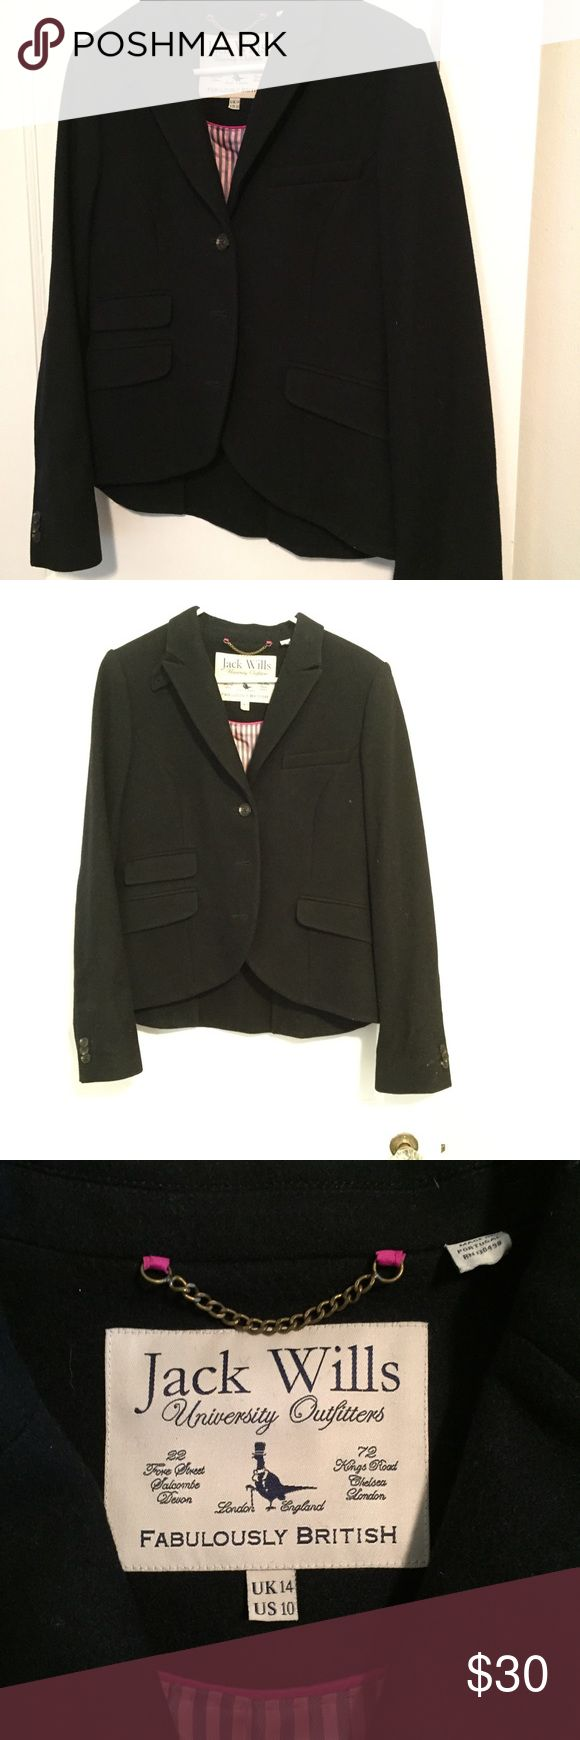 "Jack Wills black wool English jacket size 10 Jack Wills size 10 100% wool 38"" bust, 23"" sleeves, 26"" long pink striped lining.  Wear with jeans, a pencil skirt or a boho skirt. Even wear with your track pants!  A wardrobe staple and an I,portent part of your capsule wardrobe! Jack Wills Jackets & Coats Blazers"